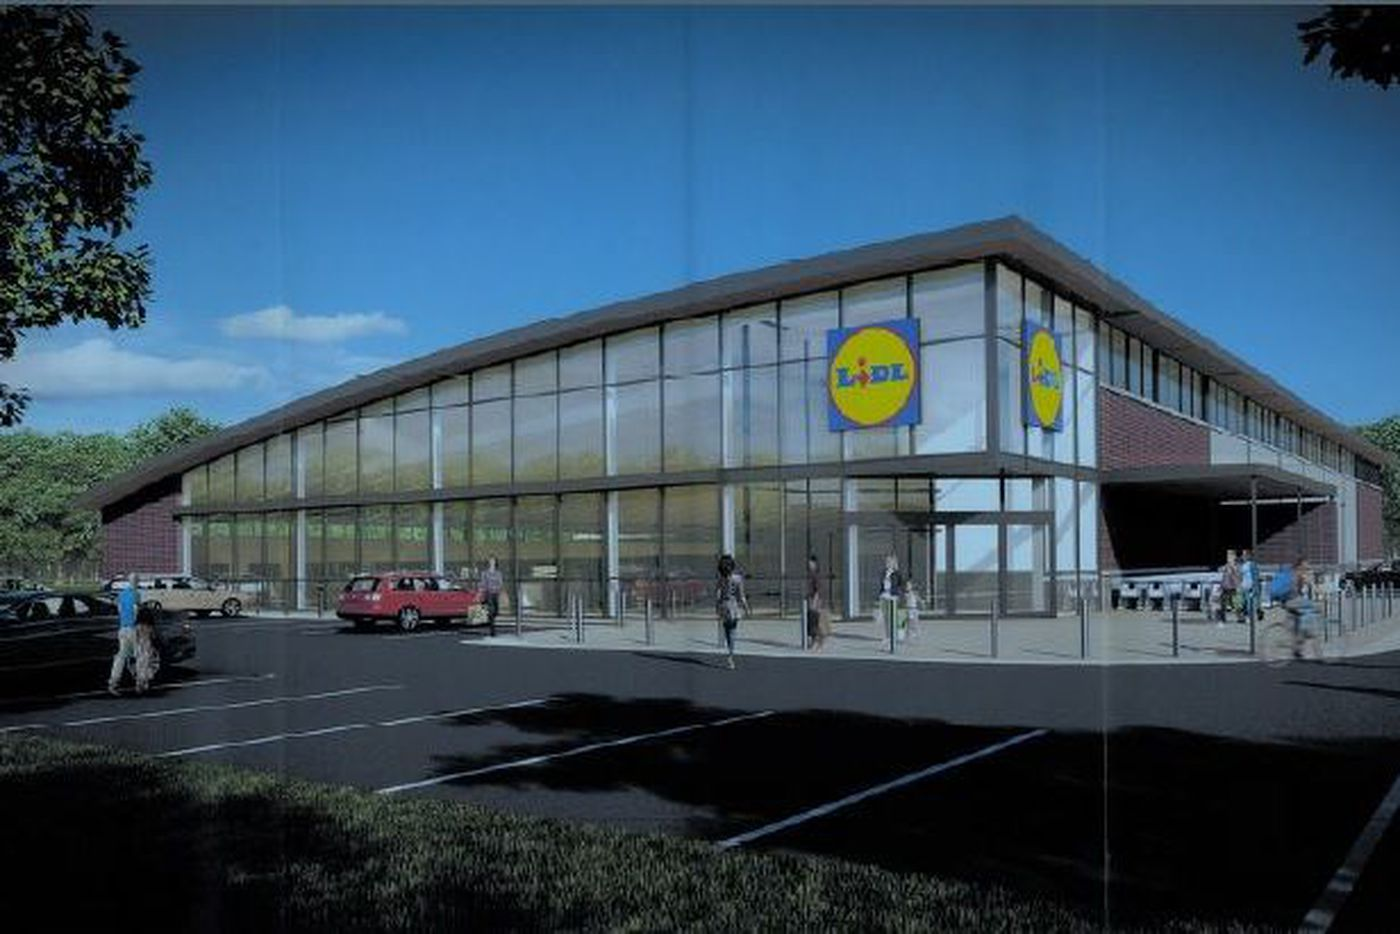 Discount grocer Lidl still sees opportunity around Philly and South Jersey, just less than before